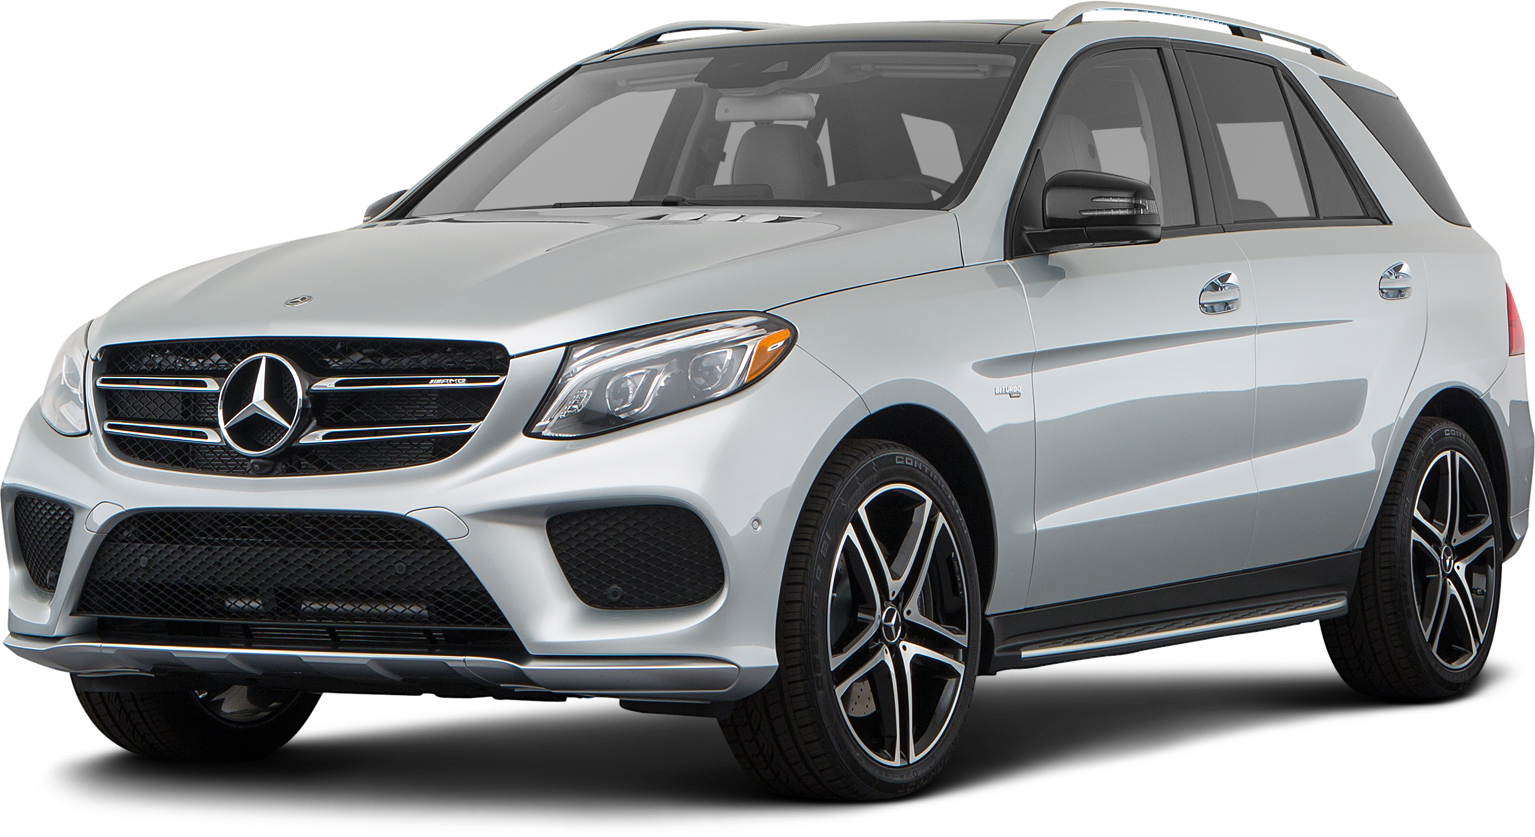 2019 Mercedes-Benz AMG GLE 43 Incentives, Specials & Offers